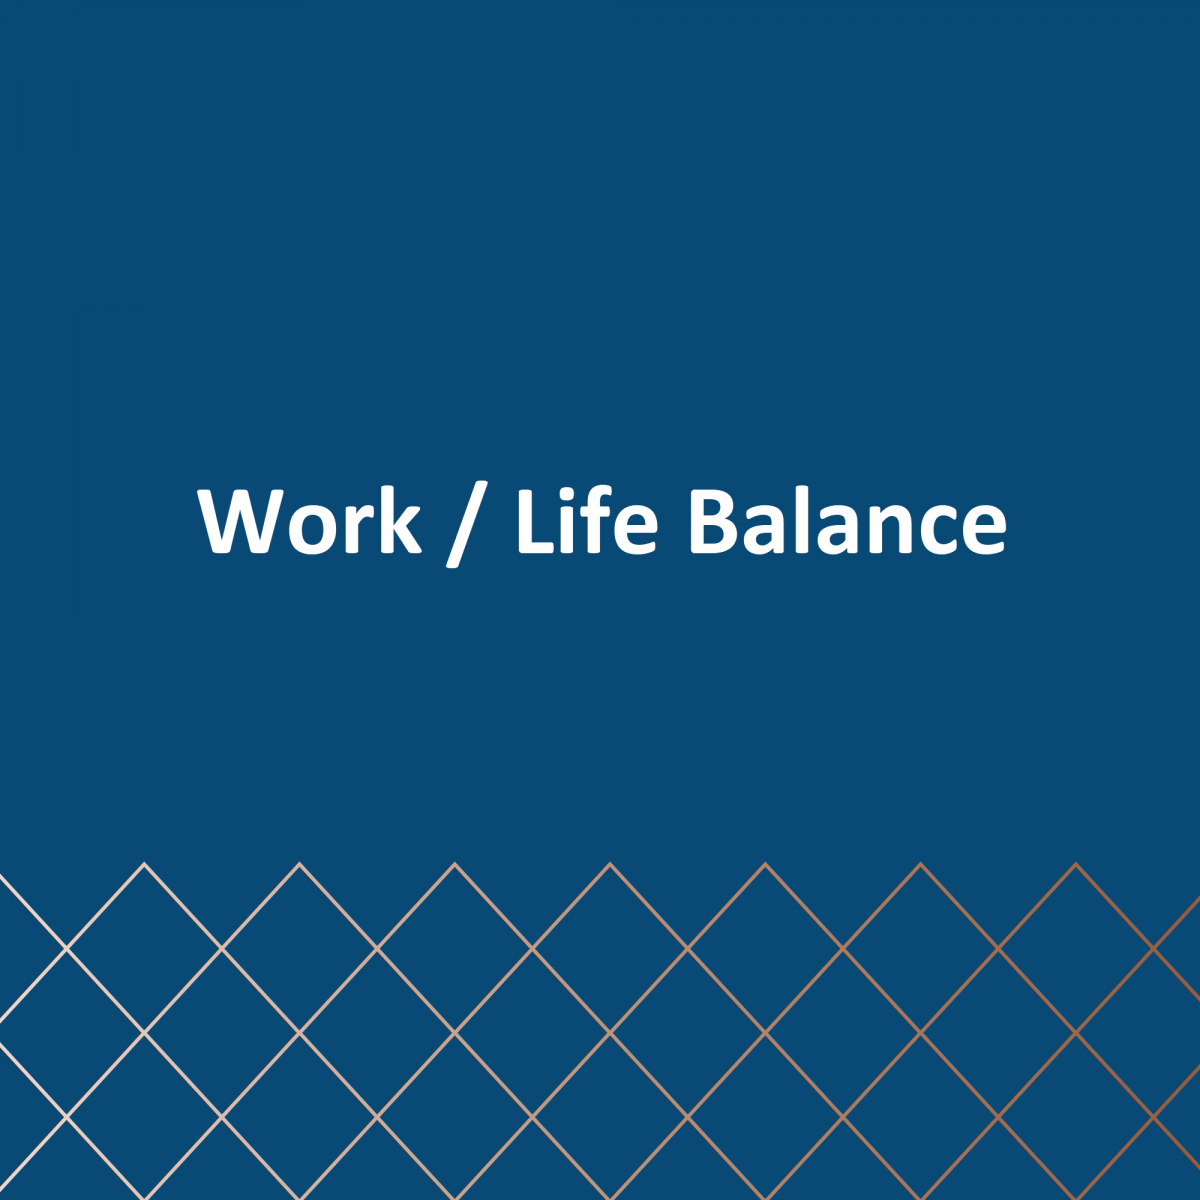 How to achieve a better work/life balance